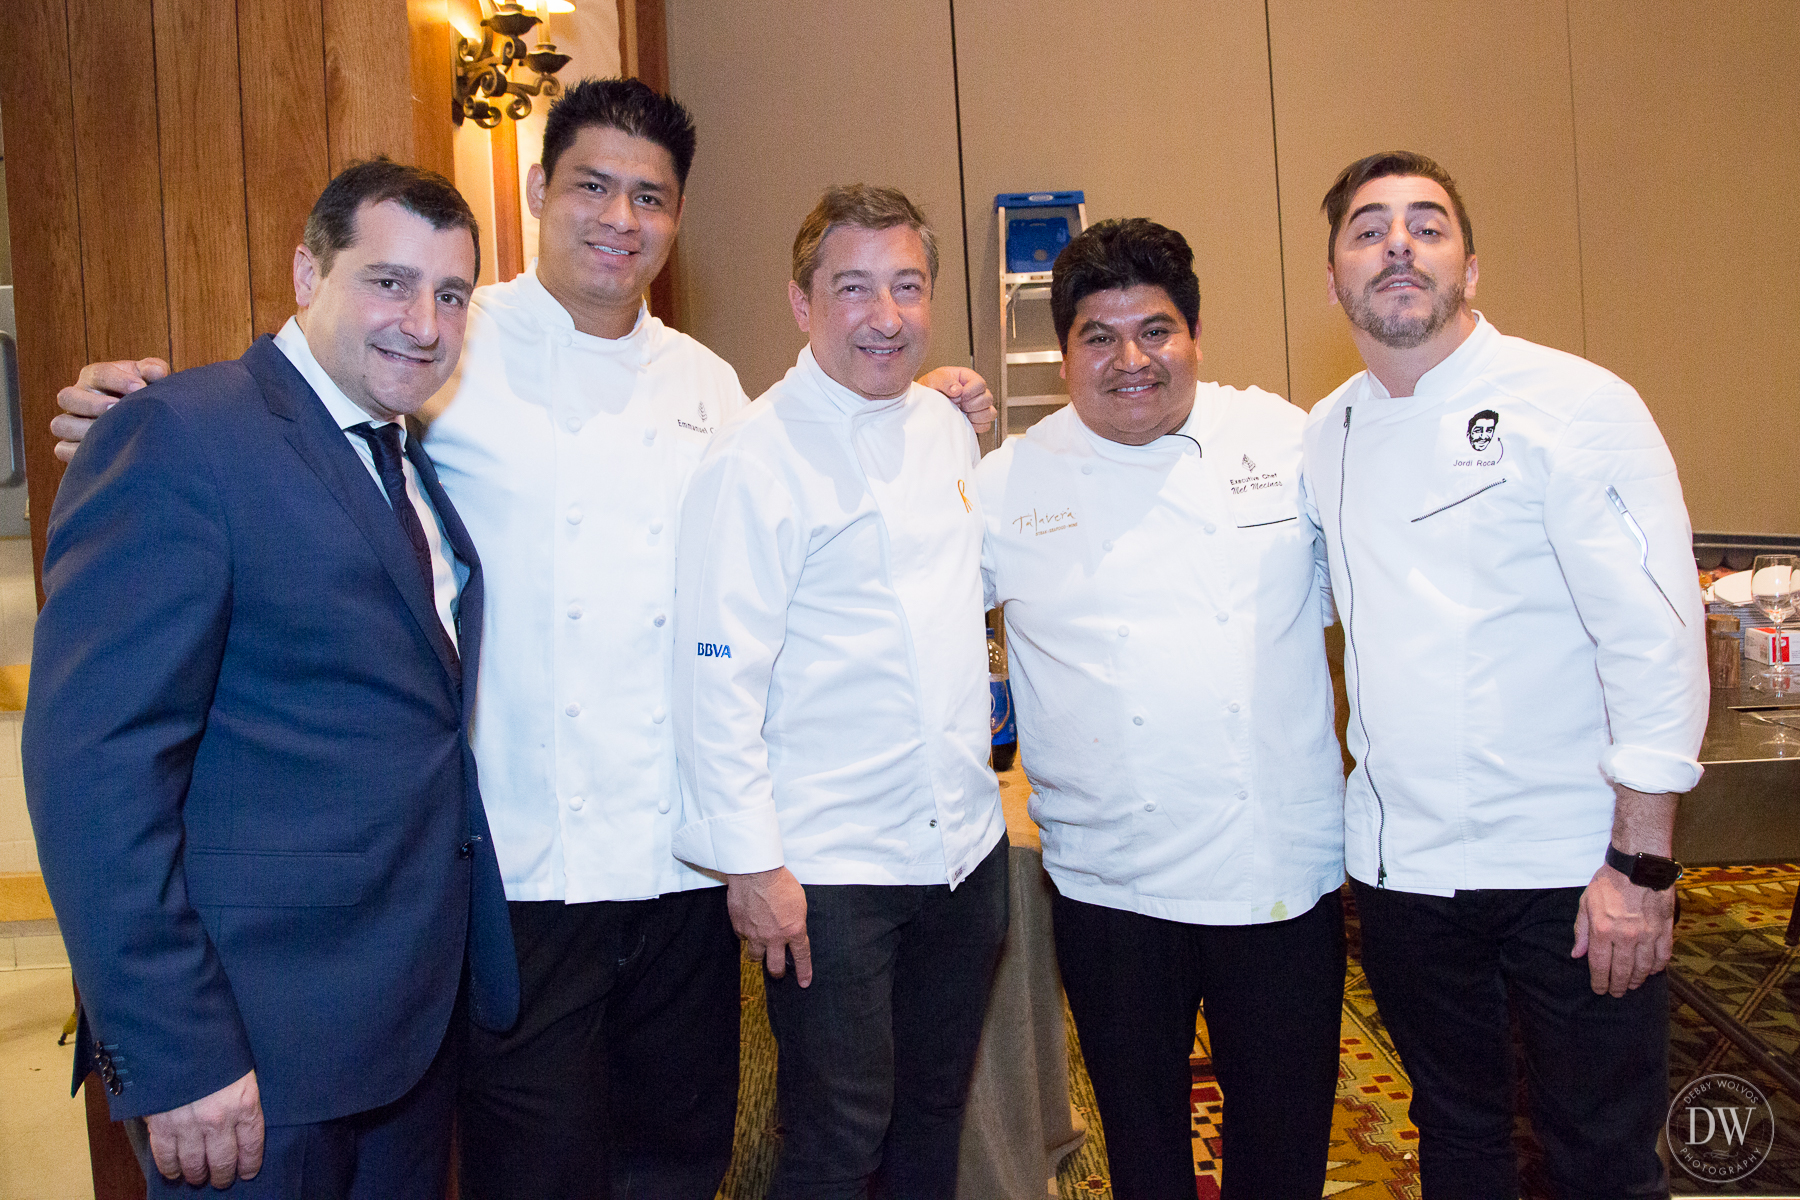 Sommelier Josep Roca, Four Seasons Chef Emmanuel Calderon, Executive Chef Joan Roca, Four Seasons Executive Chef Mel Mecinas, and Pastry Chef Jordi Roca.